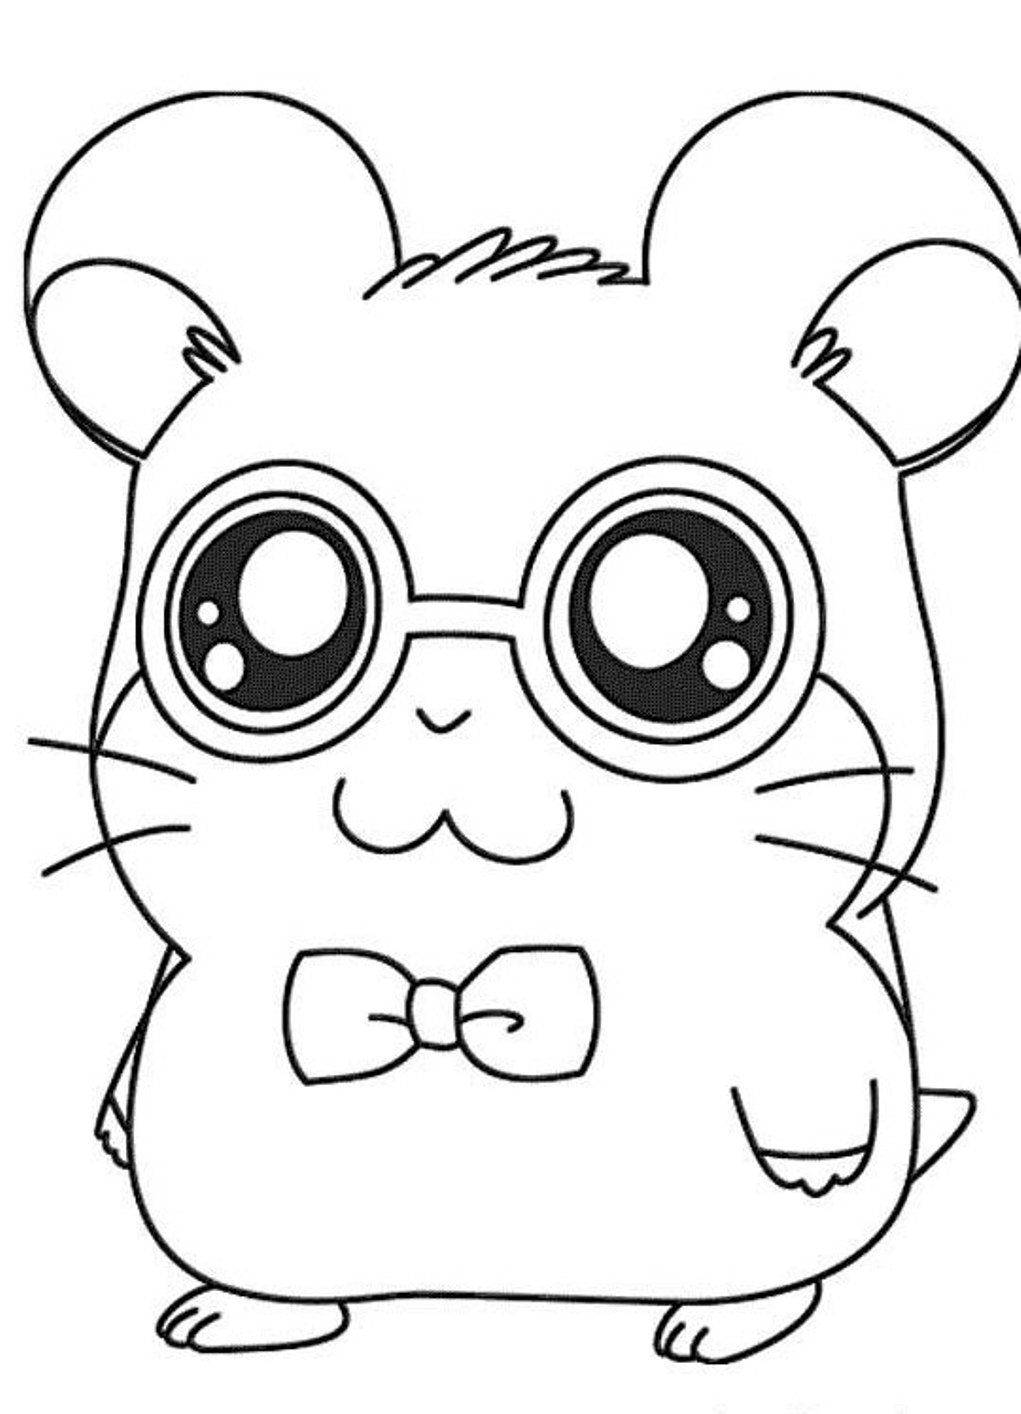 Cute food coloring pages az coloring pages Adorable animals coloring book